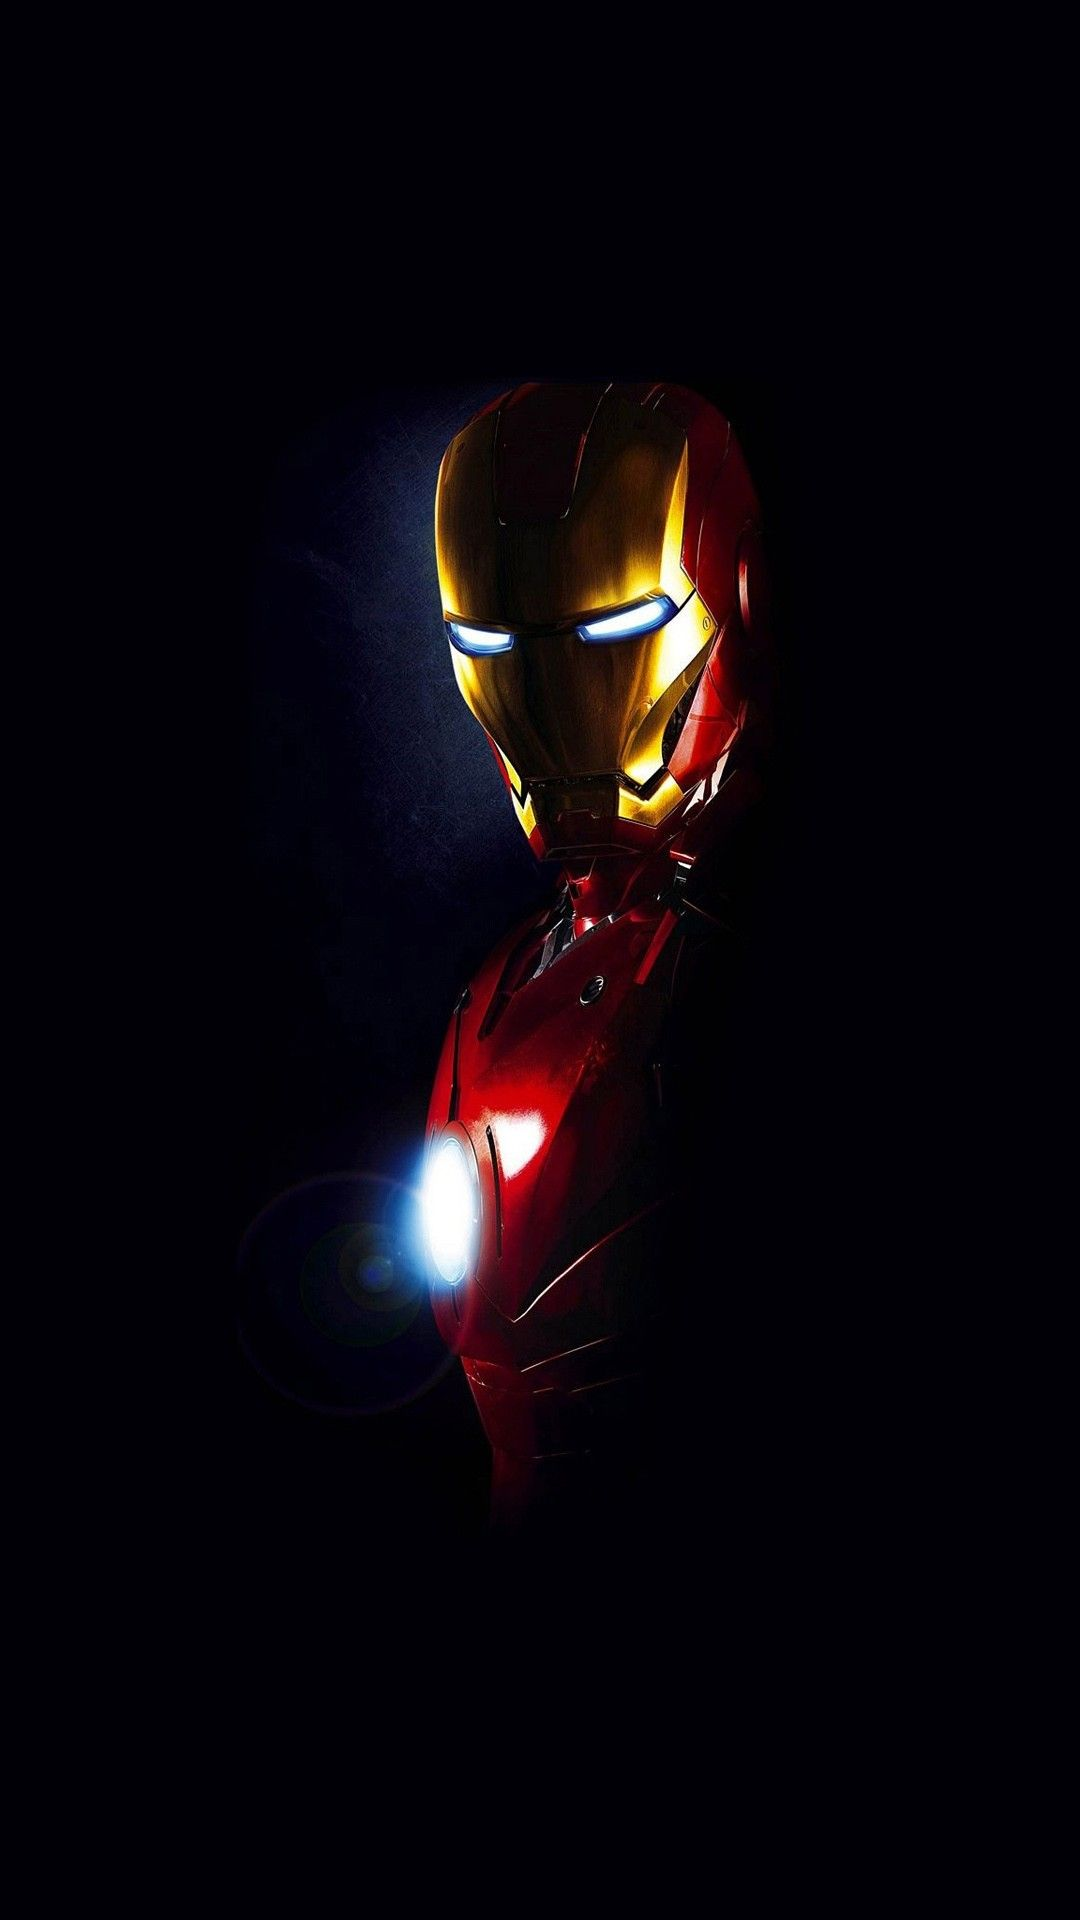 Iron Man Shadow Minimal Smartphone Wallpaper And Lockscreen